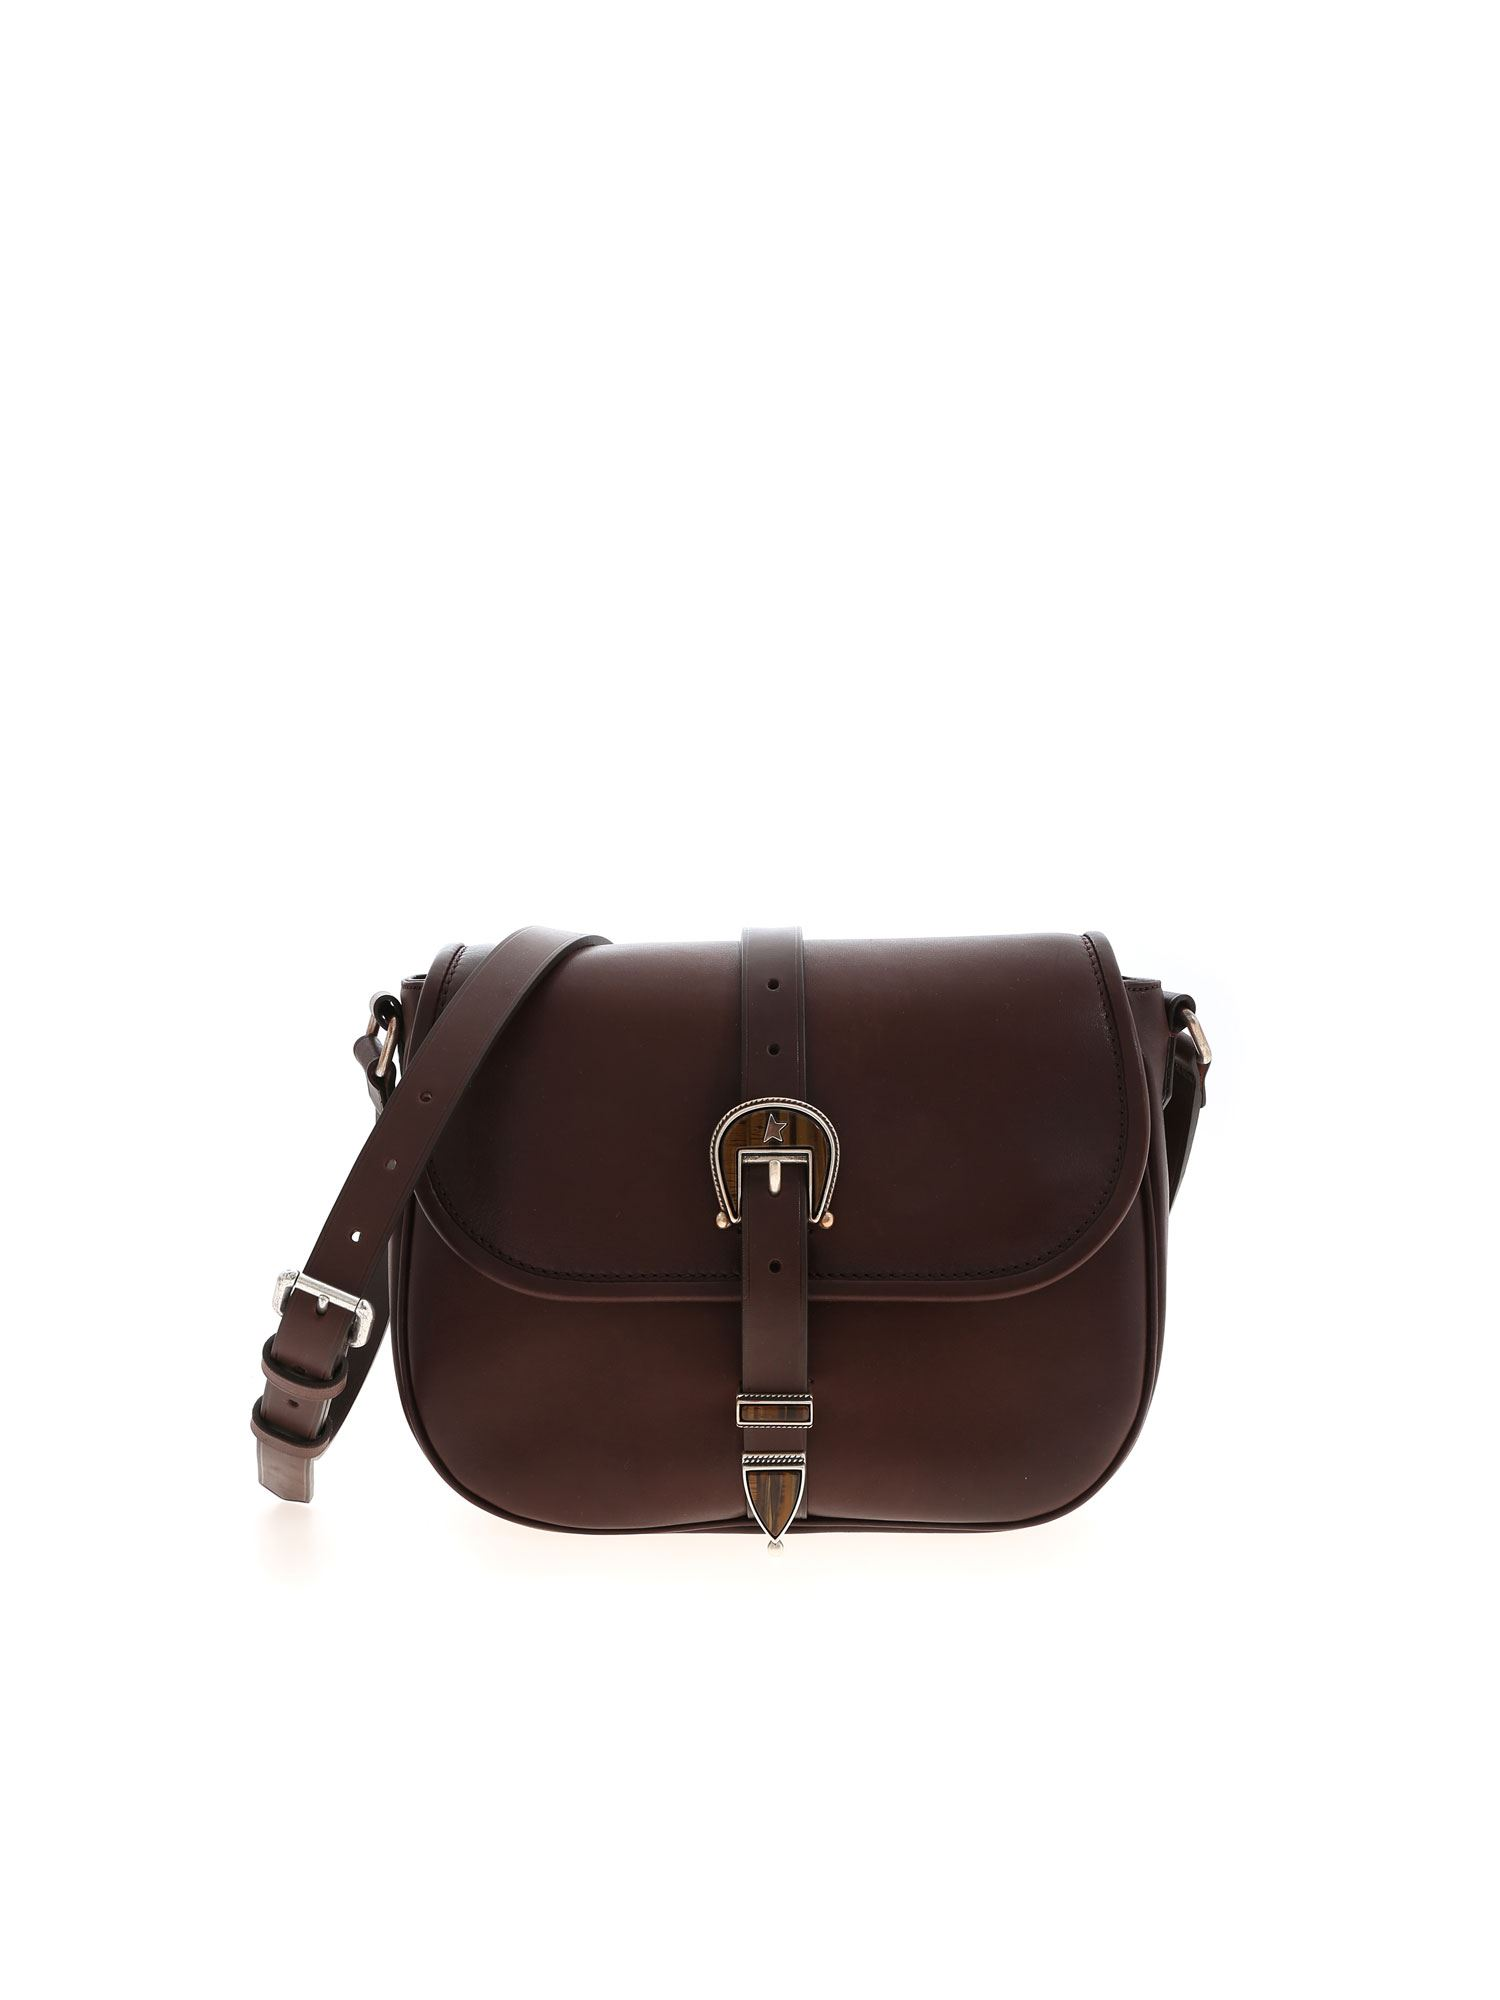 Golden Goose RODEO MEDIUM BAG IN BROWN